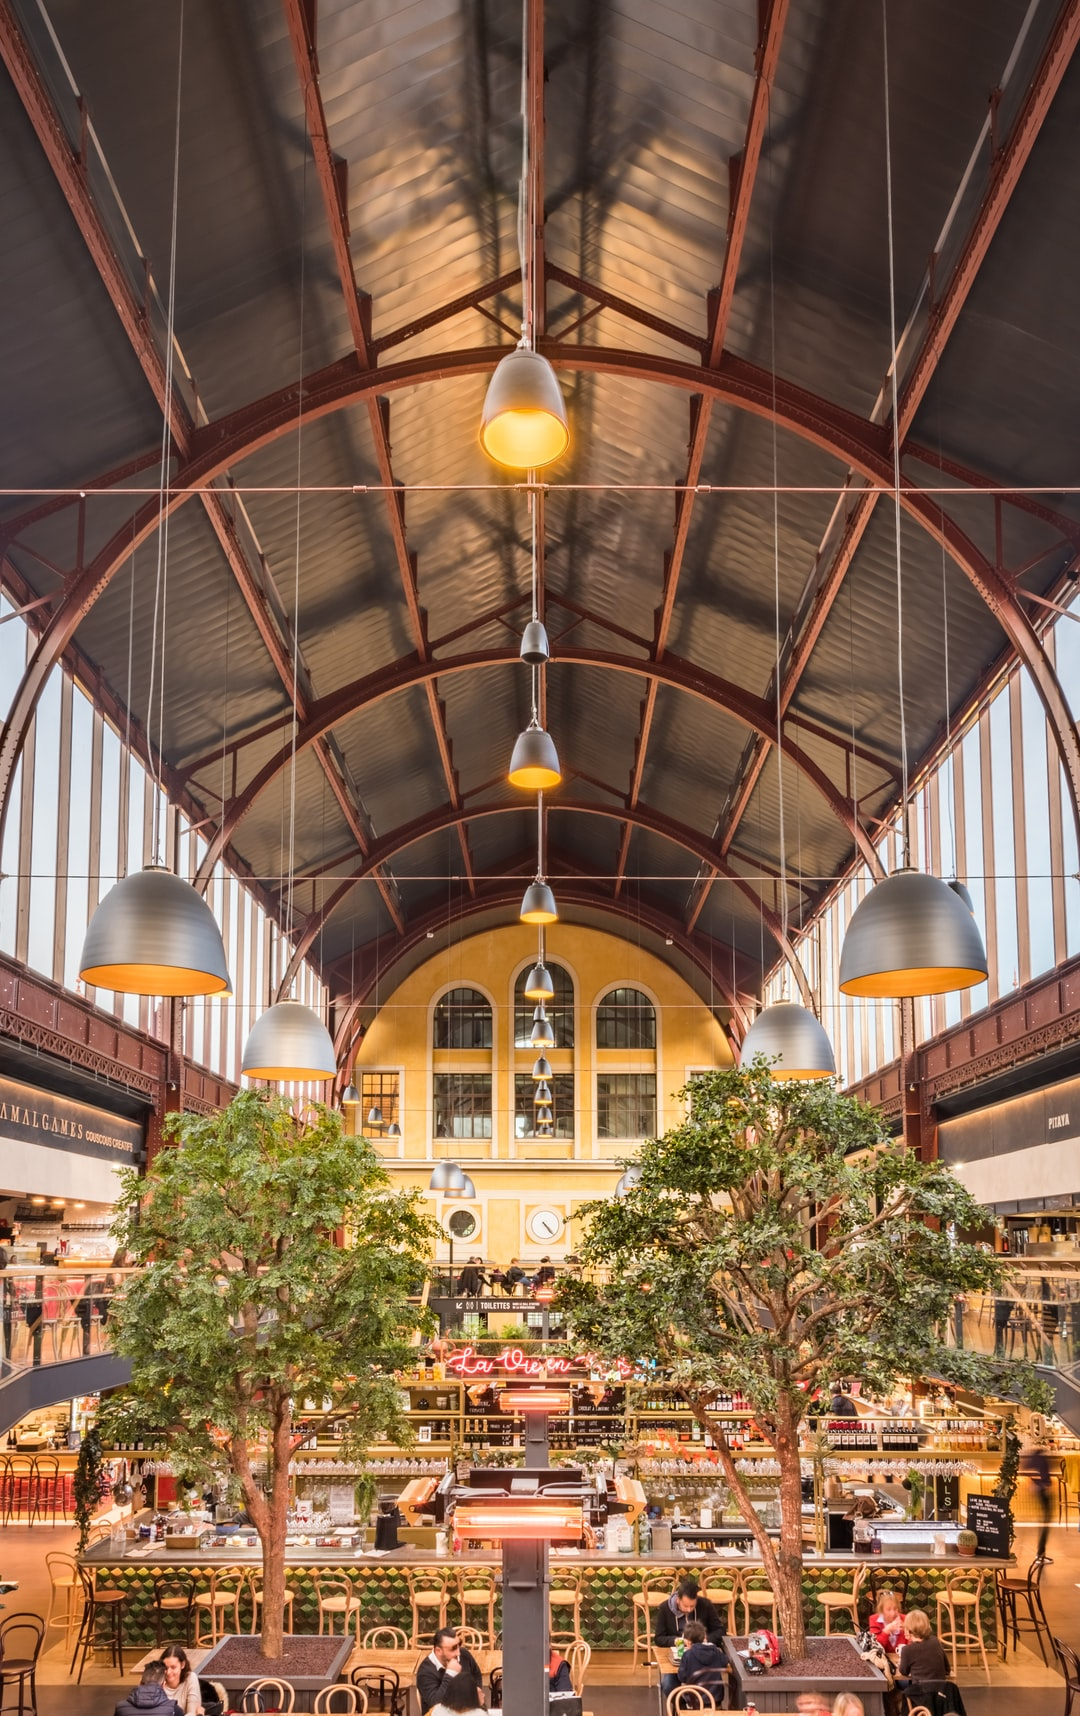 The majestic Gare du Sud station in Nice, which is now a beautiful gourmet hall!